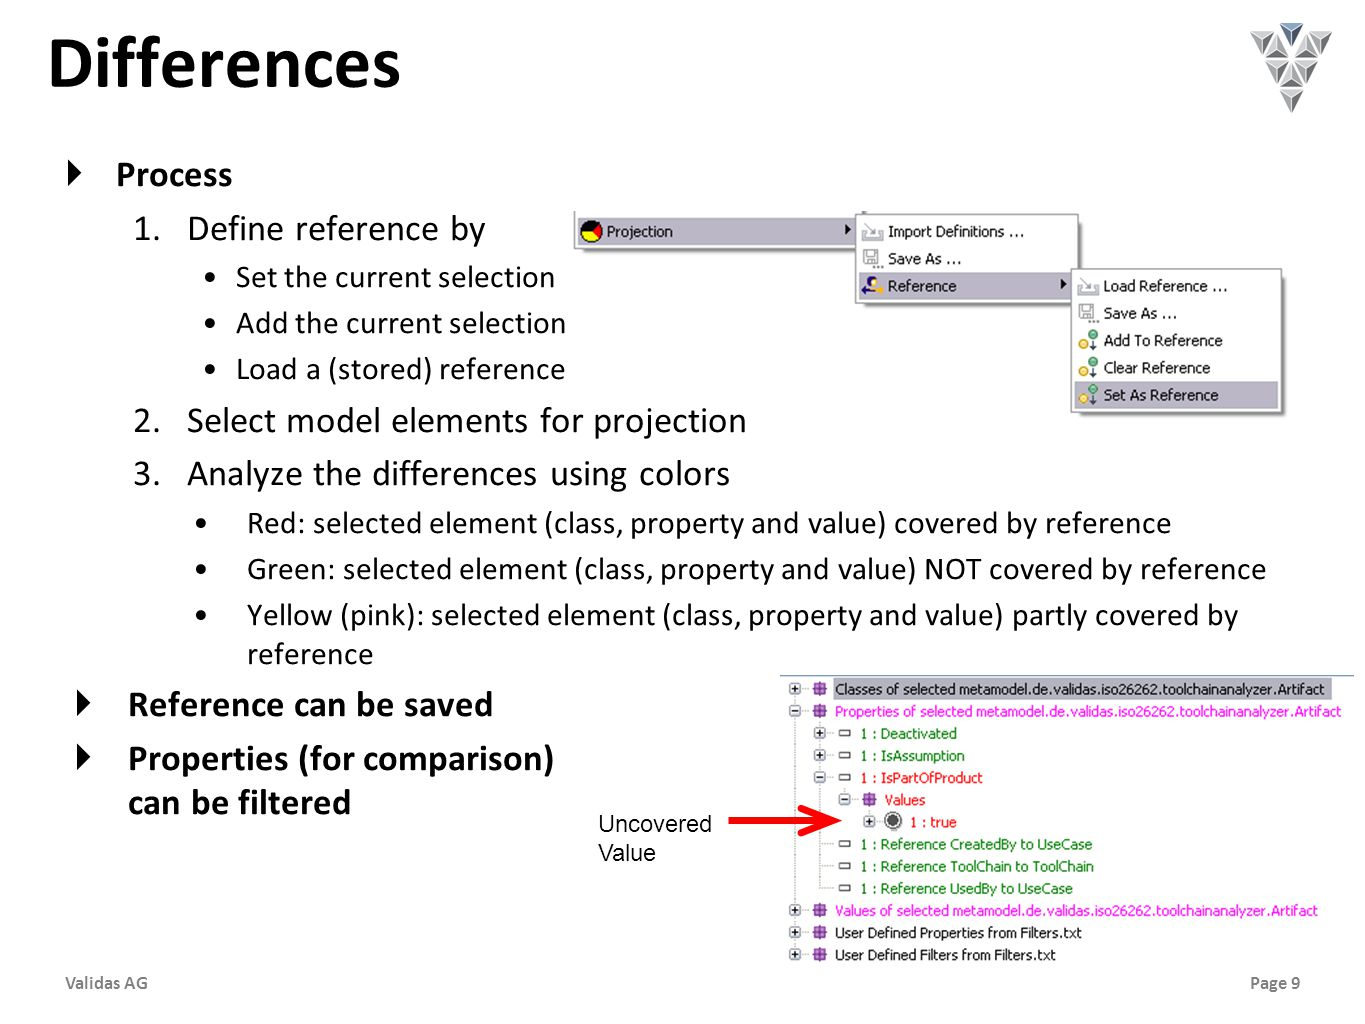 Page 9Validas AG Differences  Process 1.Define reference by Set the current selection Add the current selection Load a (stored) reference 2.Select model elements for projection 3.Analyze the differences using colors Red: selected element (class, property and value) covered by reference Green: selected element (class, property and value) NOT covered by reference Yellow (pink): selected element (class, property and value) partly covered by reference  Reference can be saved  Properties (for comparison) can be filtered Uncovered Value